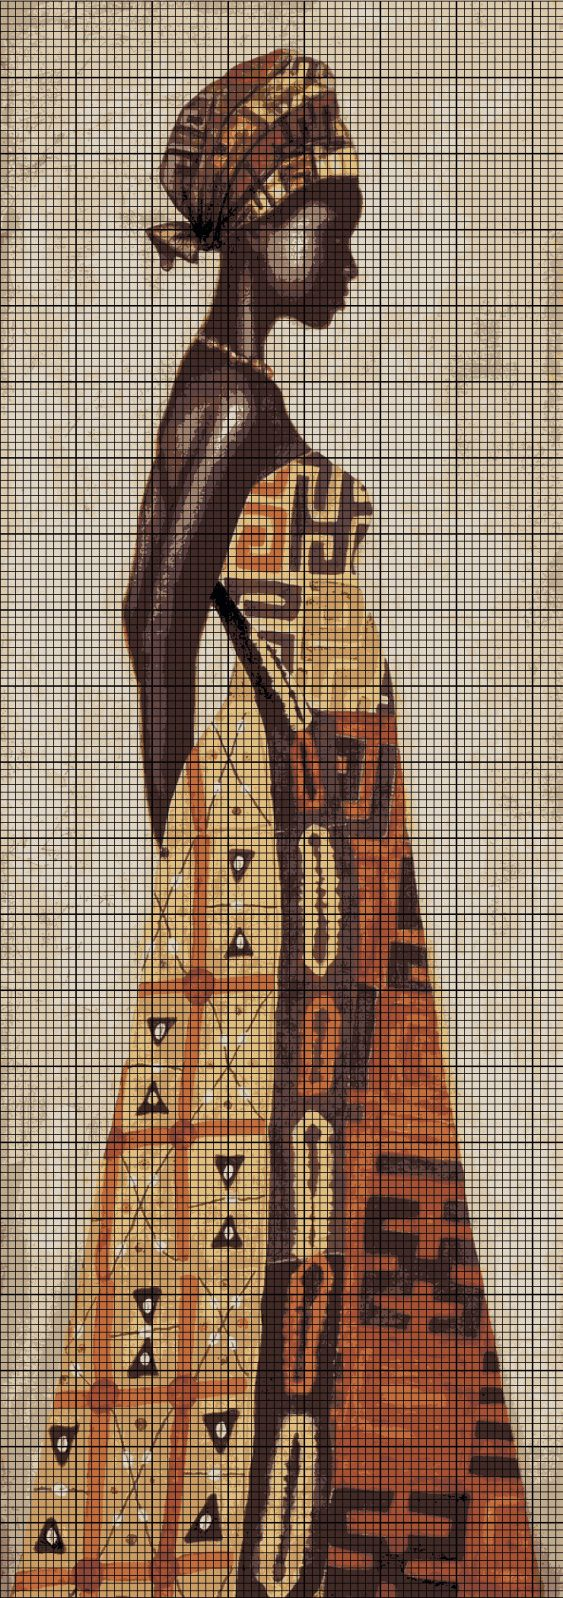 0 point de croix femme africaine - cross stitch african woman